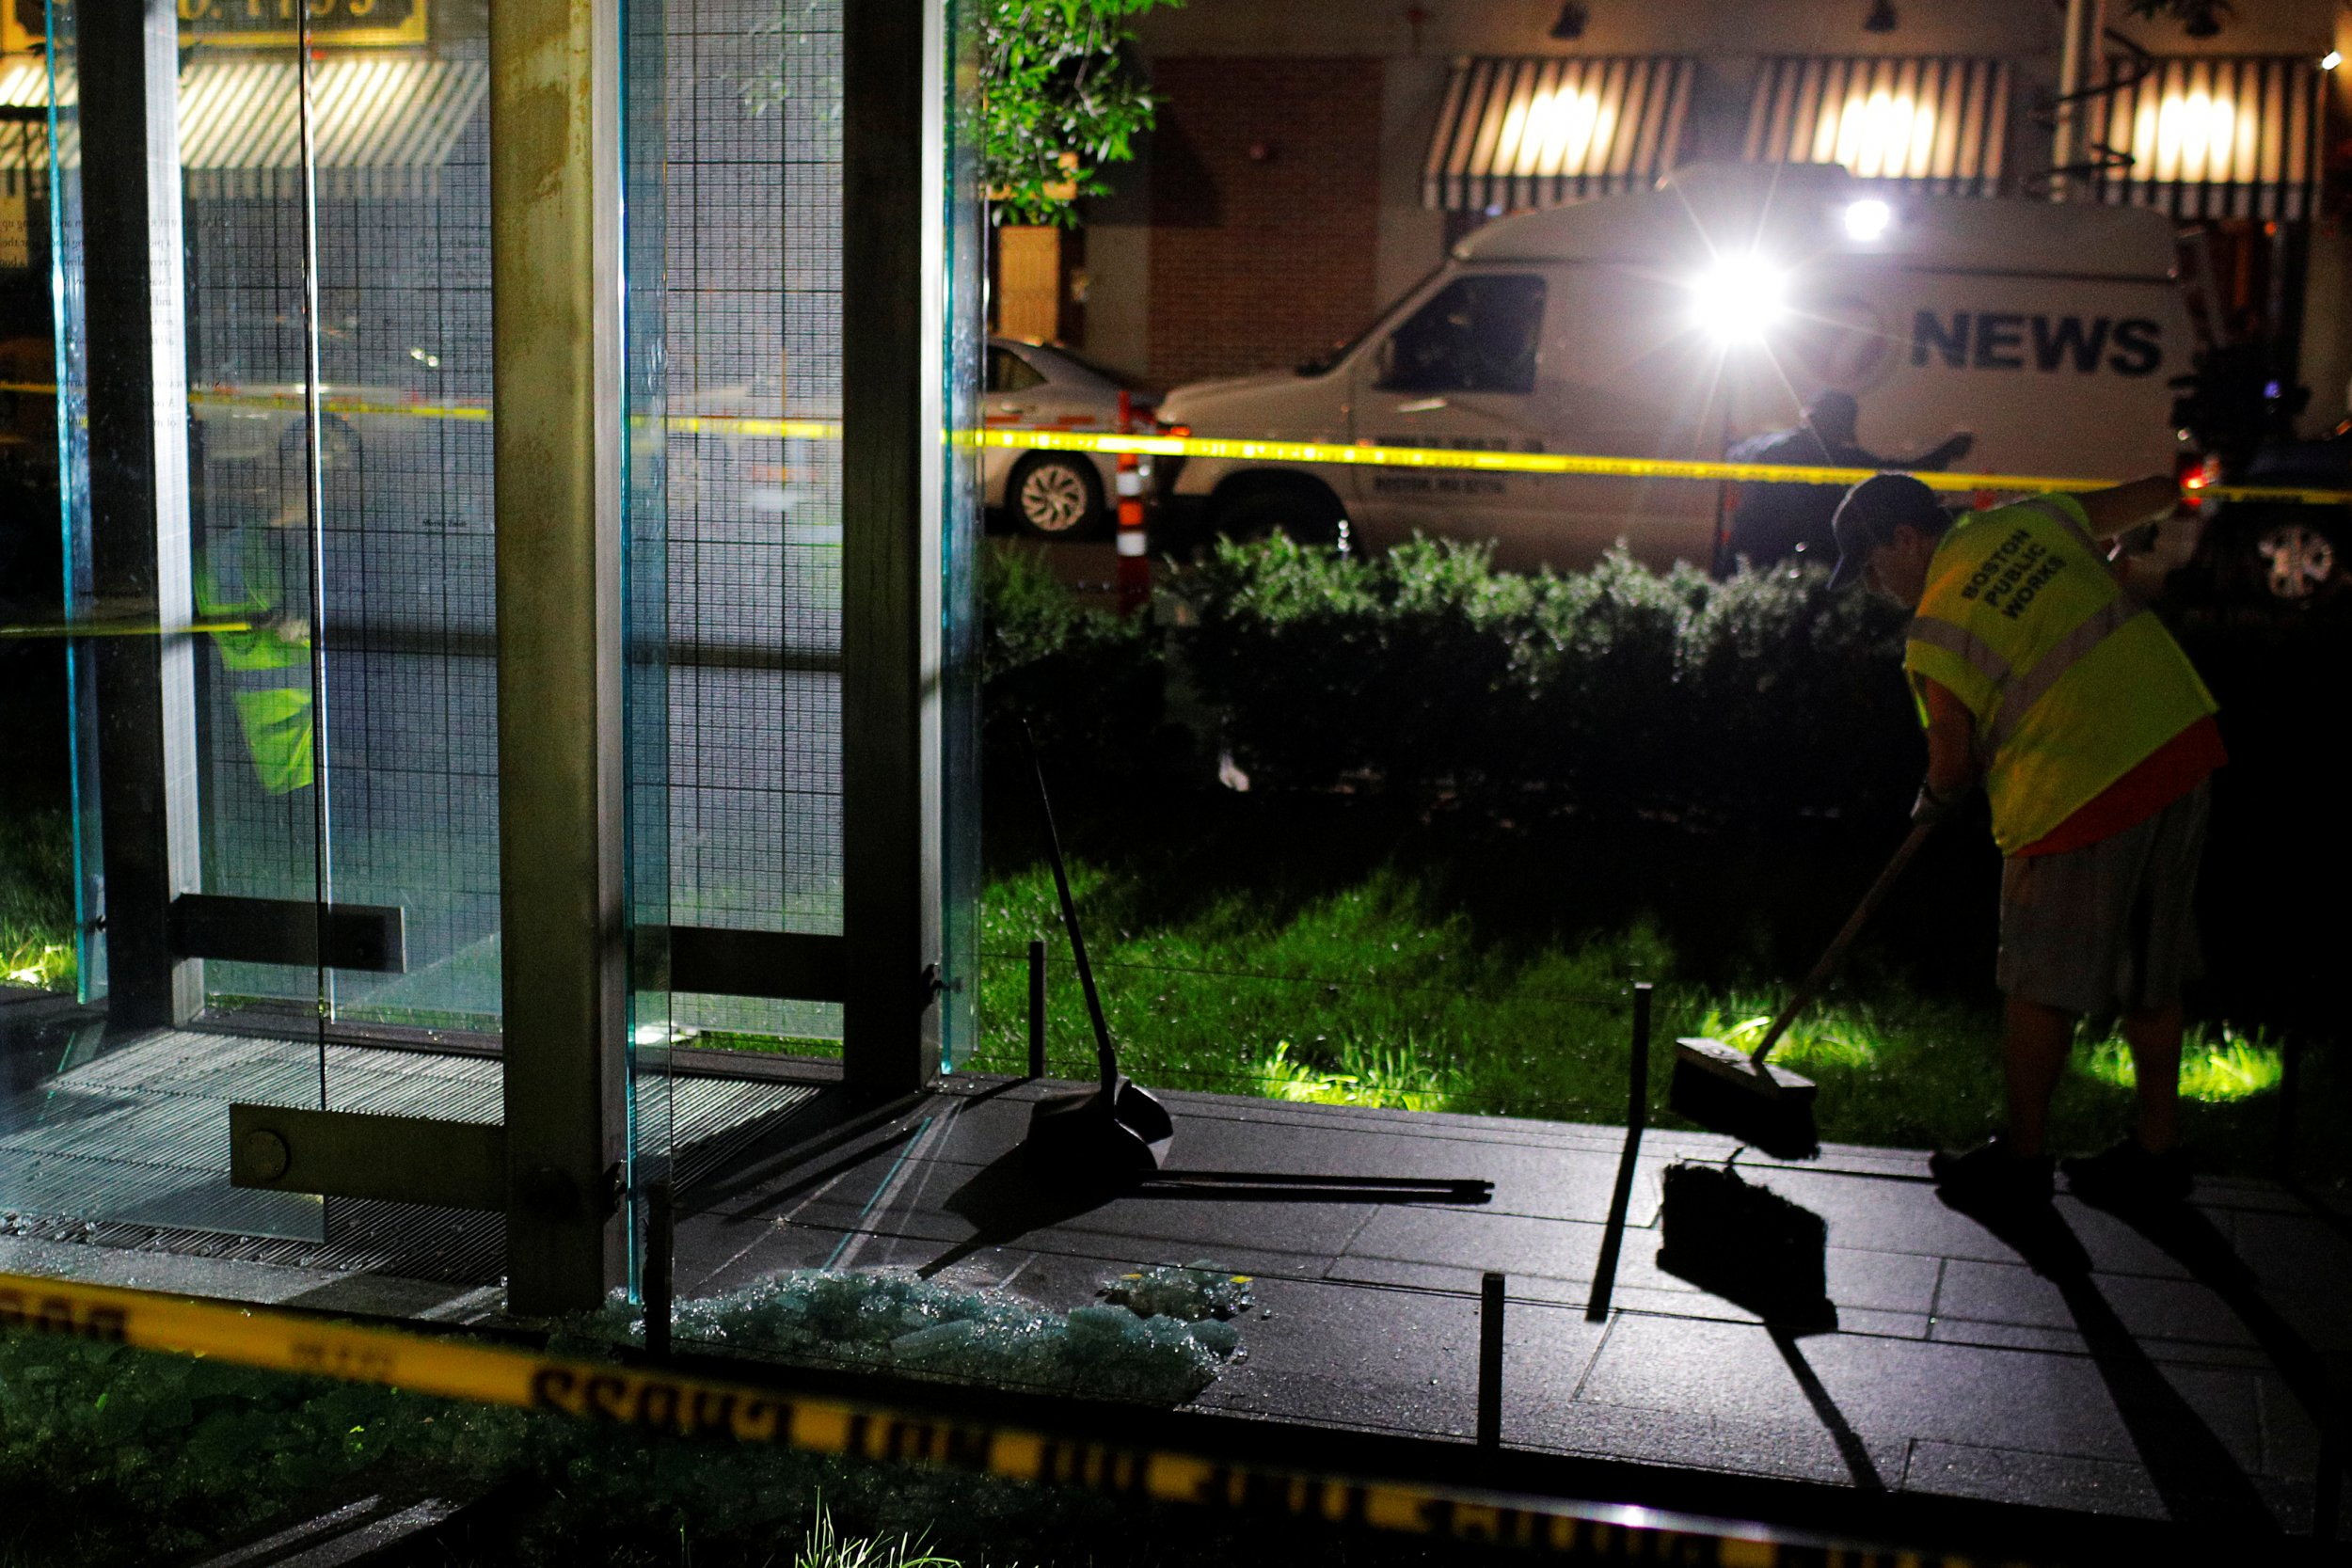 Boston Holocaust memorial vandalized